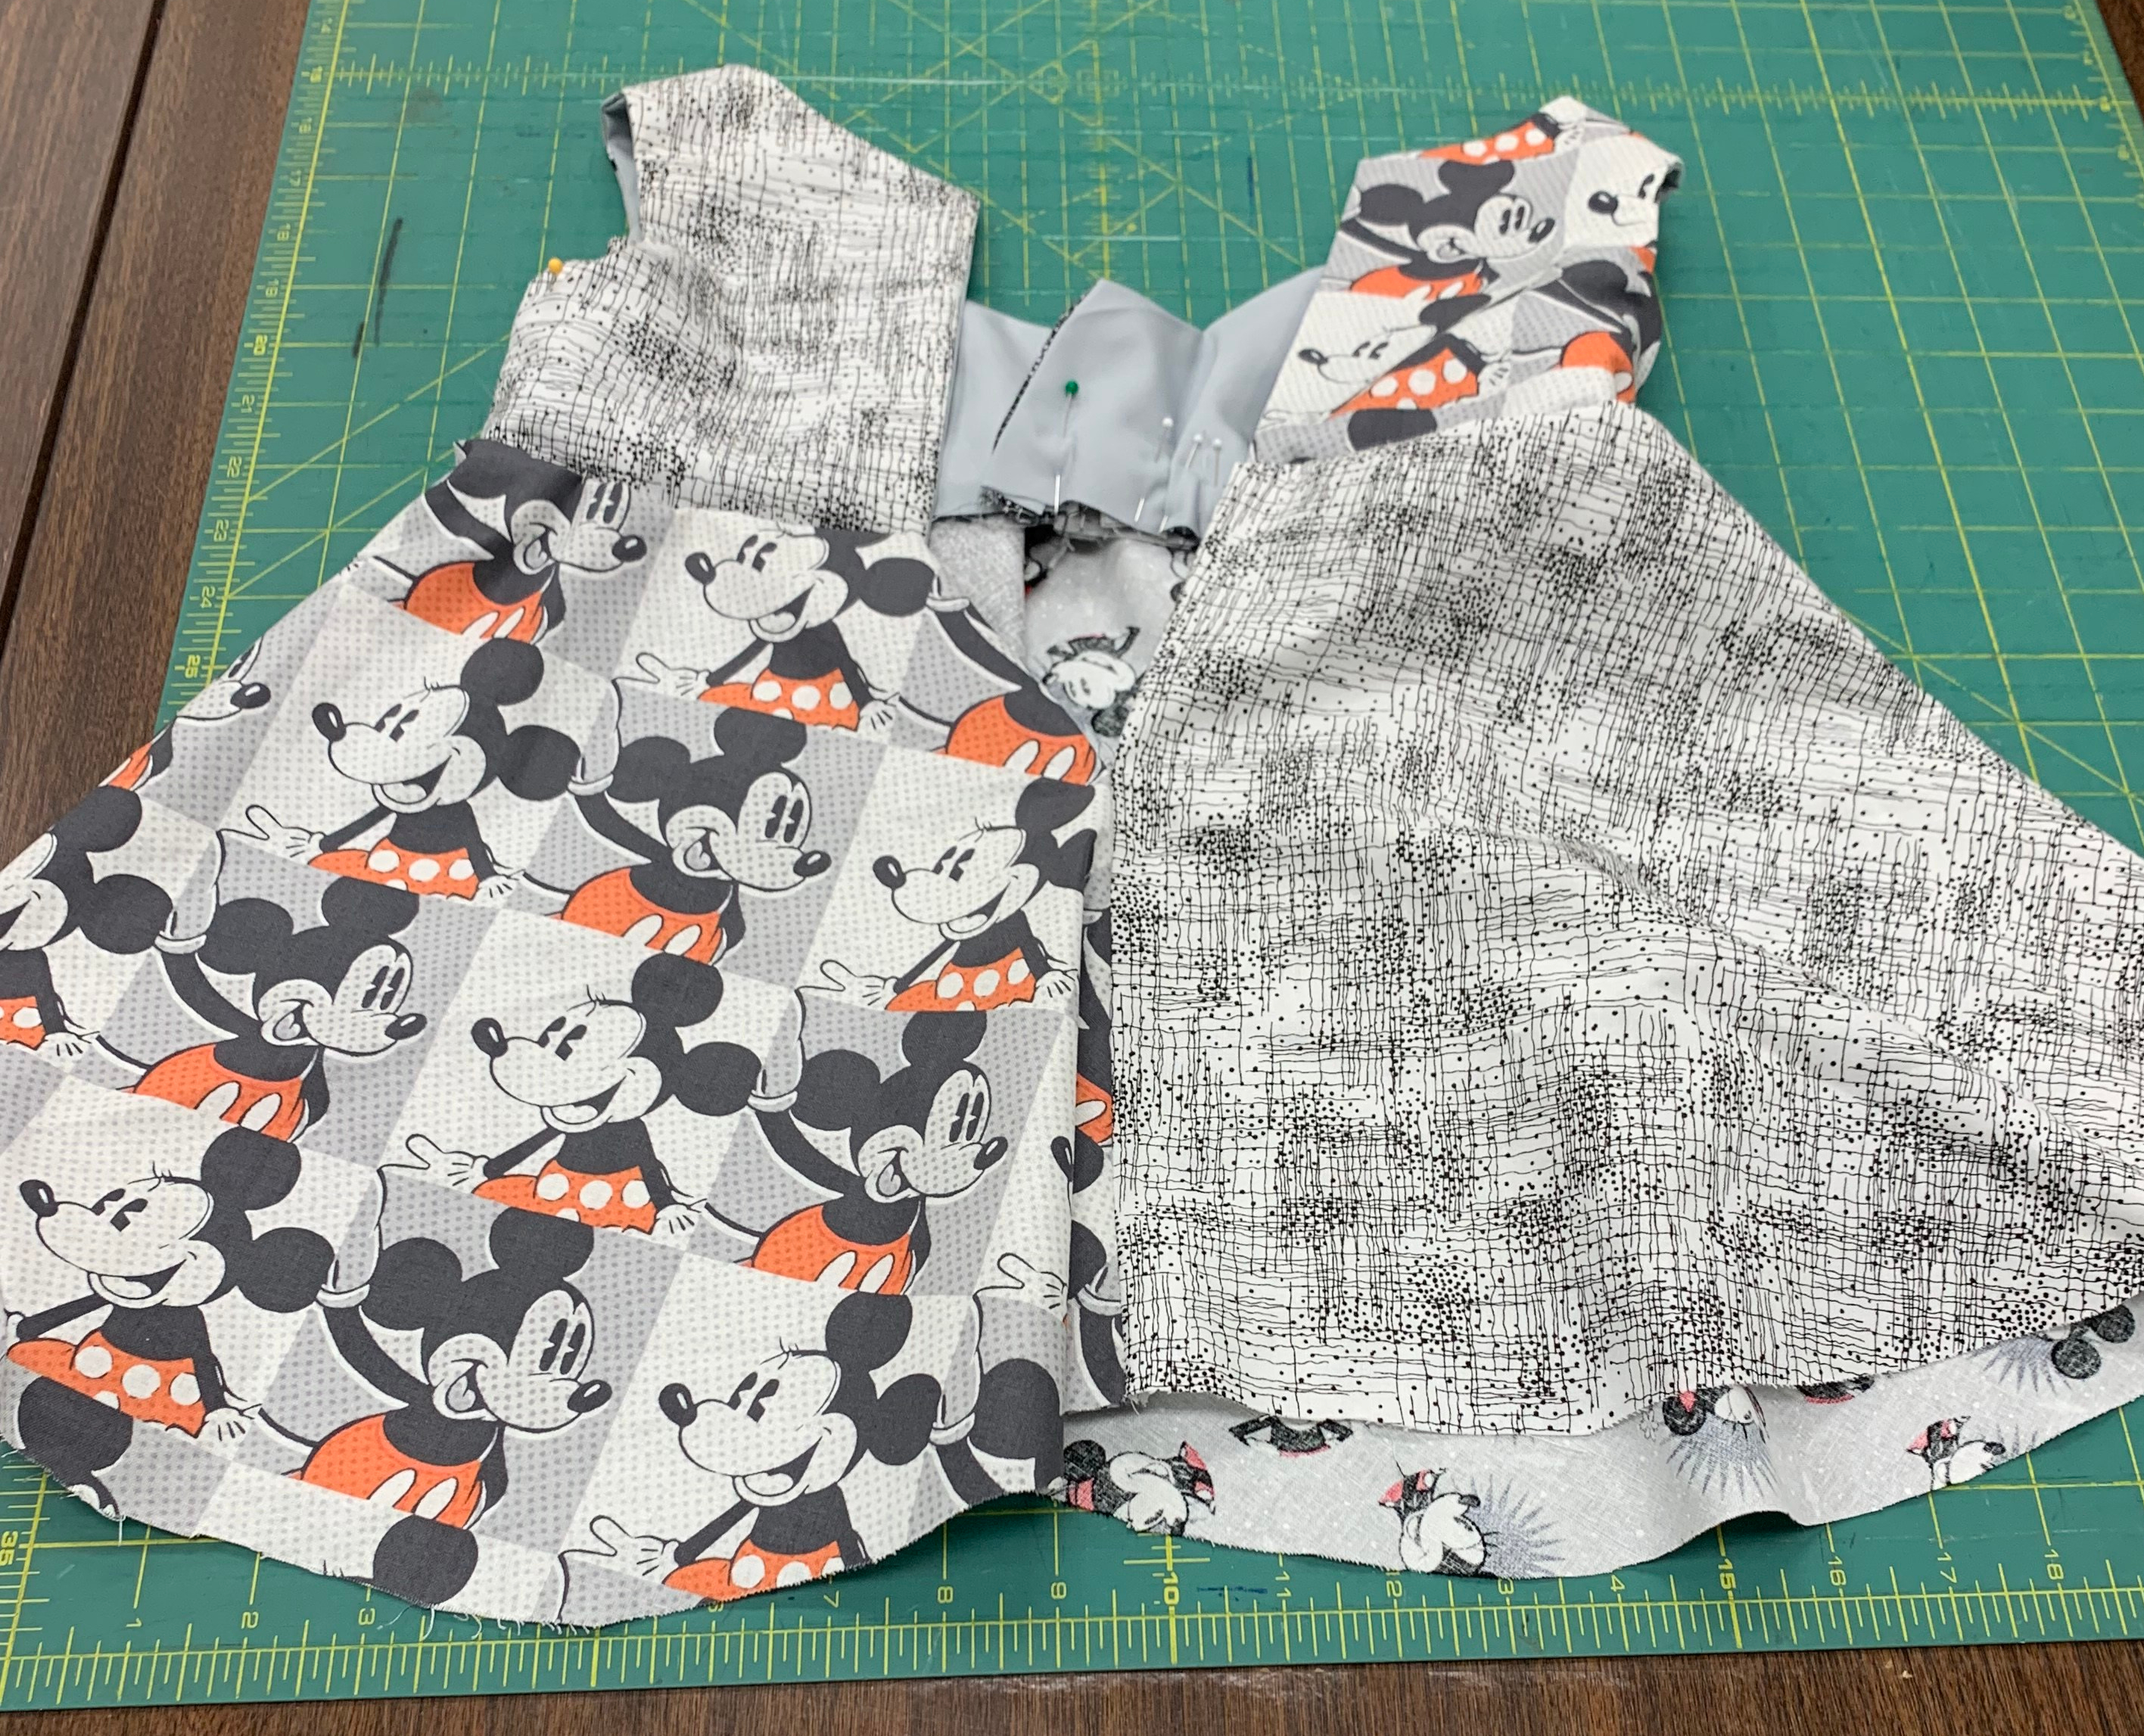 Quad Children's Dress Apirl 2019-A Streetzblog Original